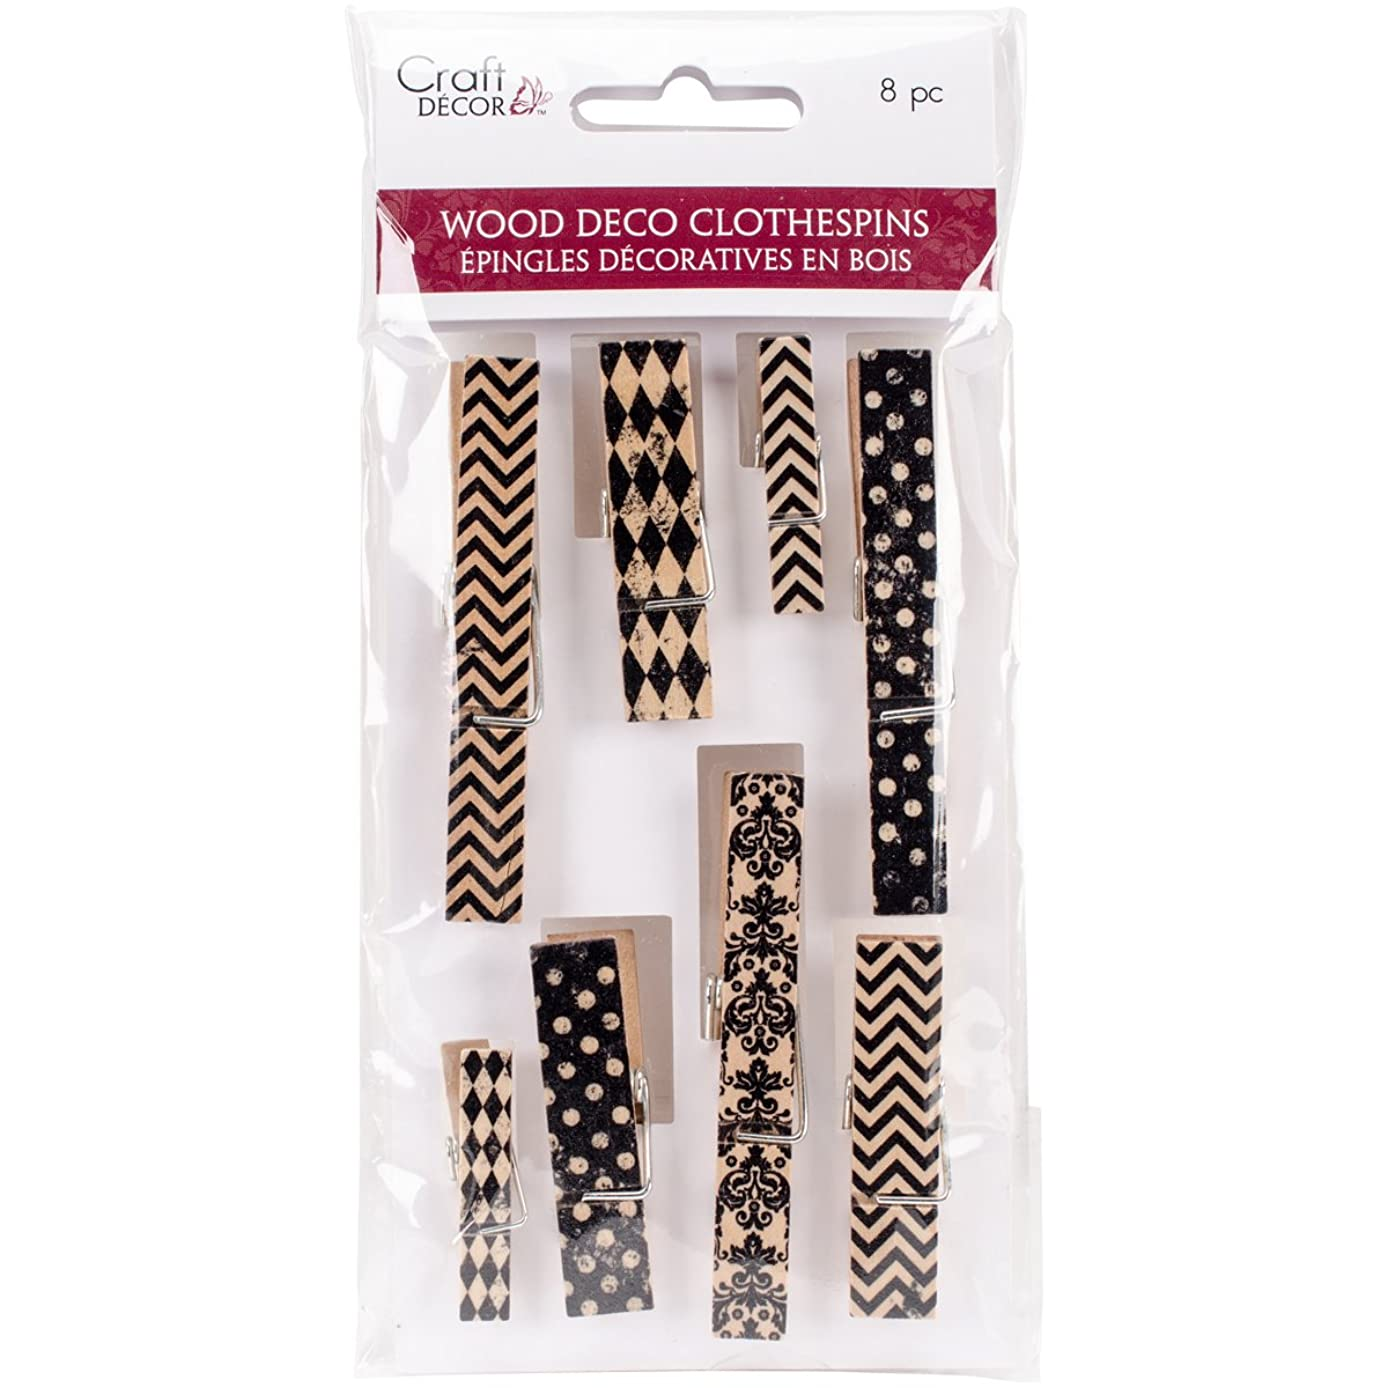 Multicraft Imports CD660A Accent Noir Wood Deco Clothespins, Multicolor